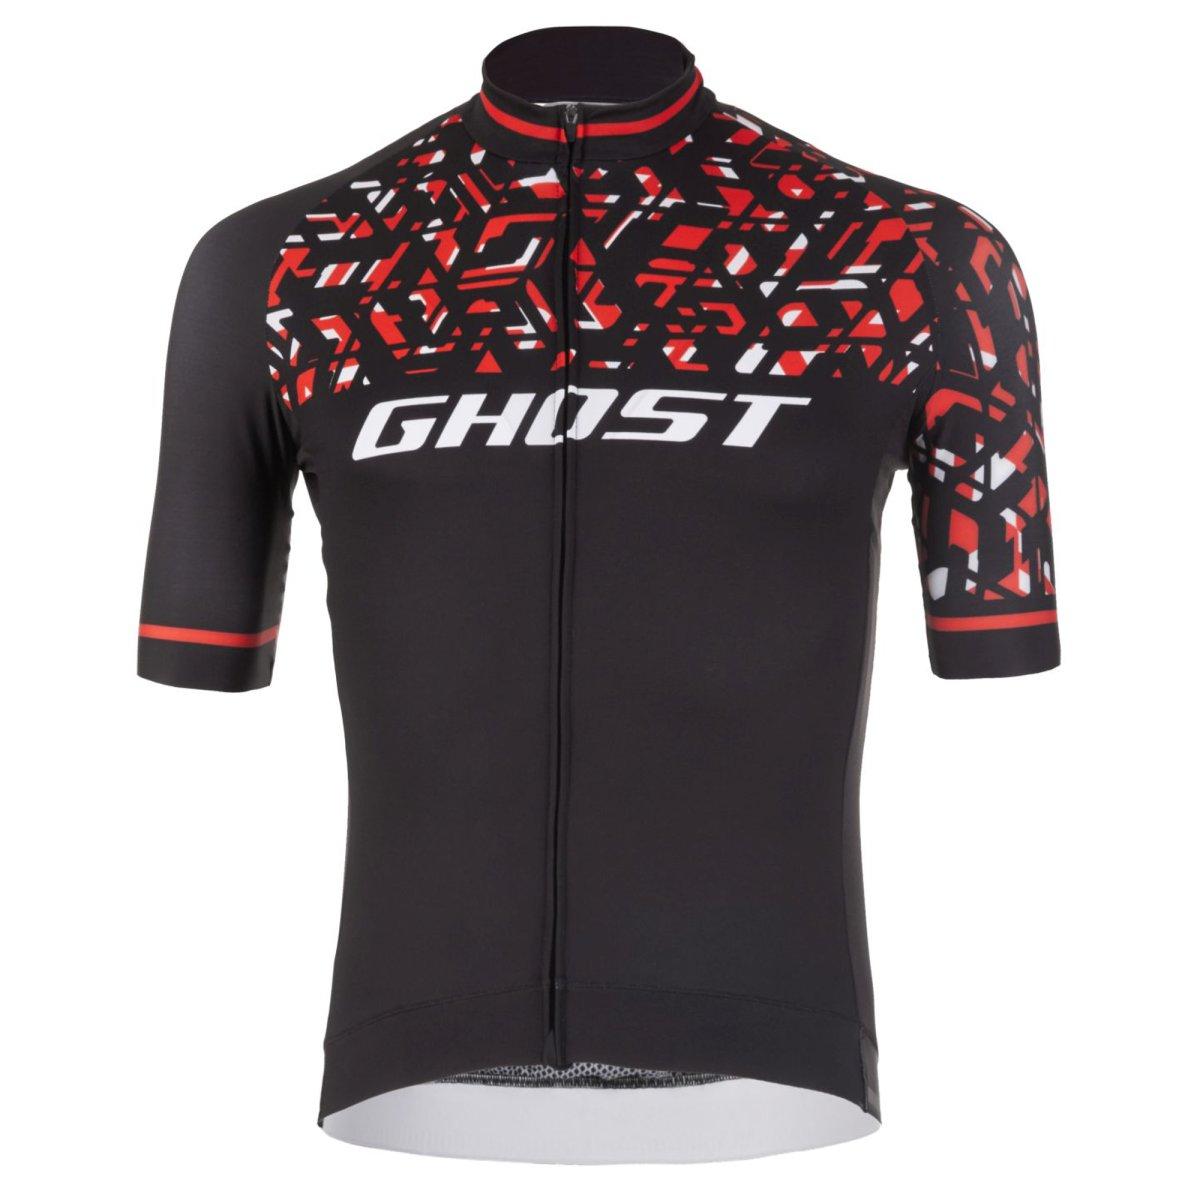 Джерси Ghost Factory Racing Short 18061, 18064, 18063, 18062